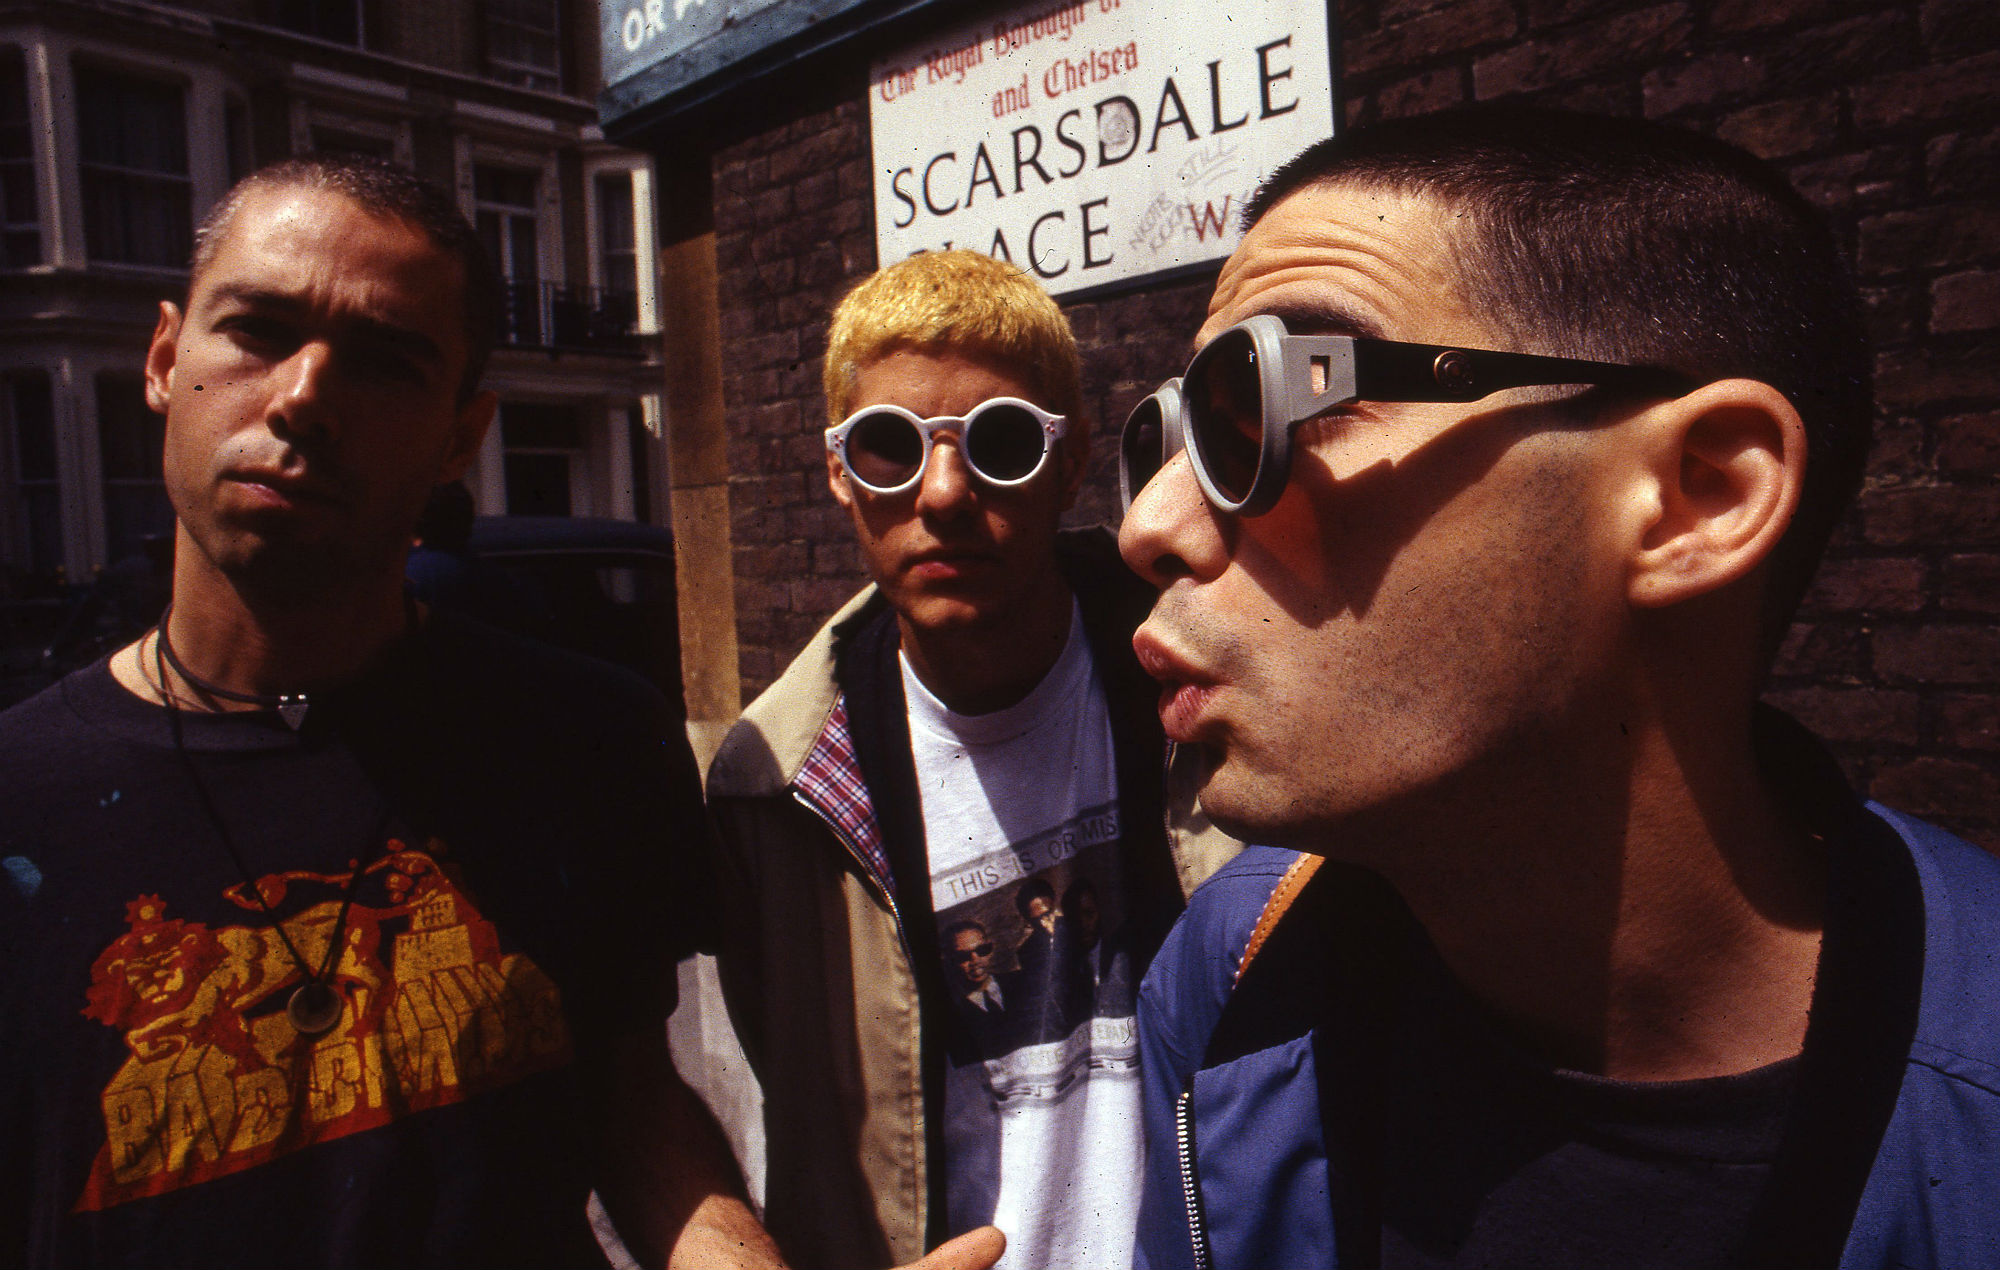 Beastie Boys Discuss Losing Mca And Going Broke After